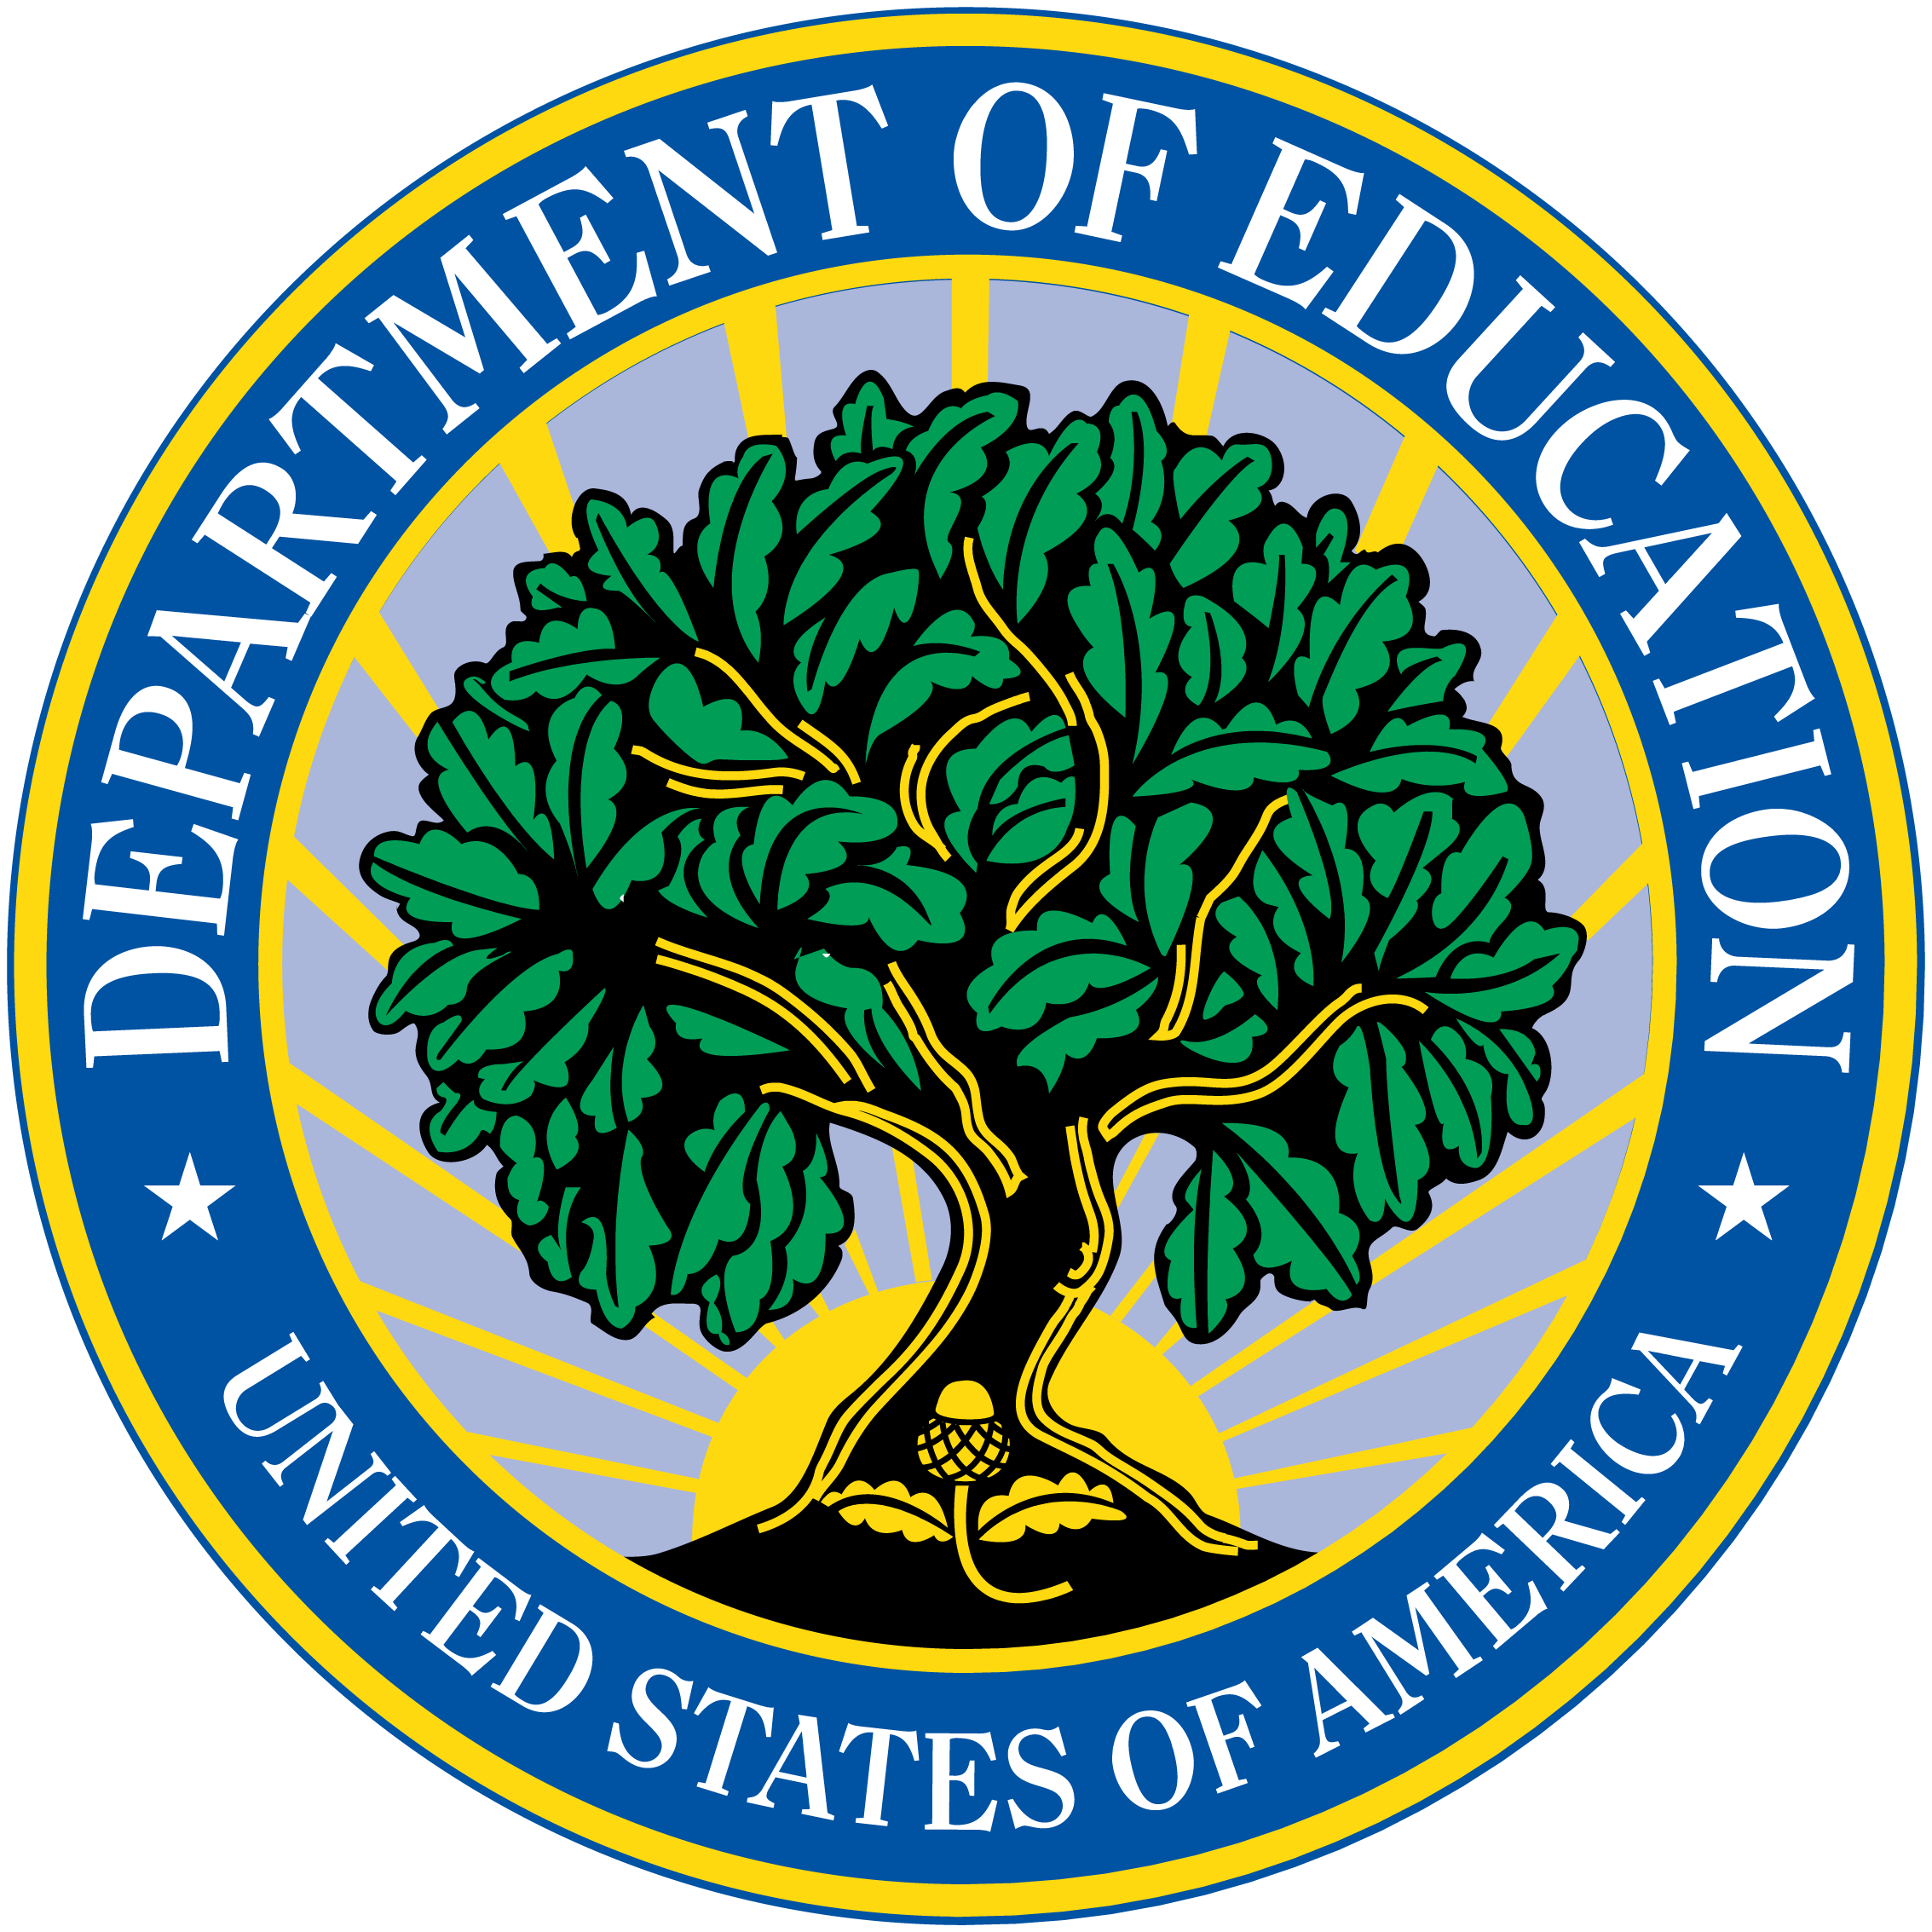 Seal-of-the-US-Dept-of-Education